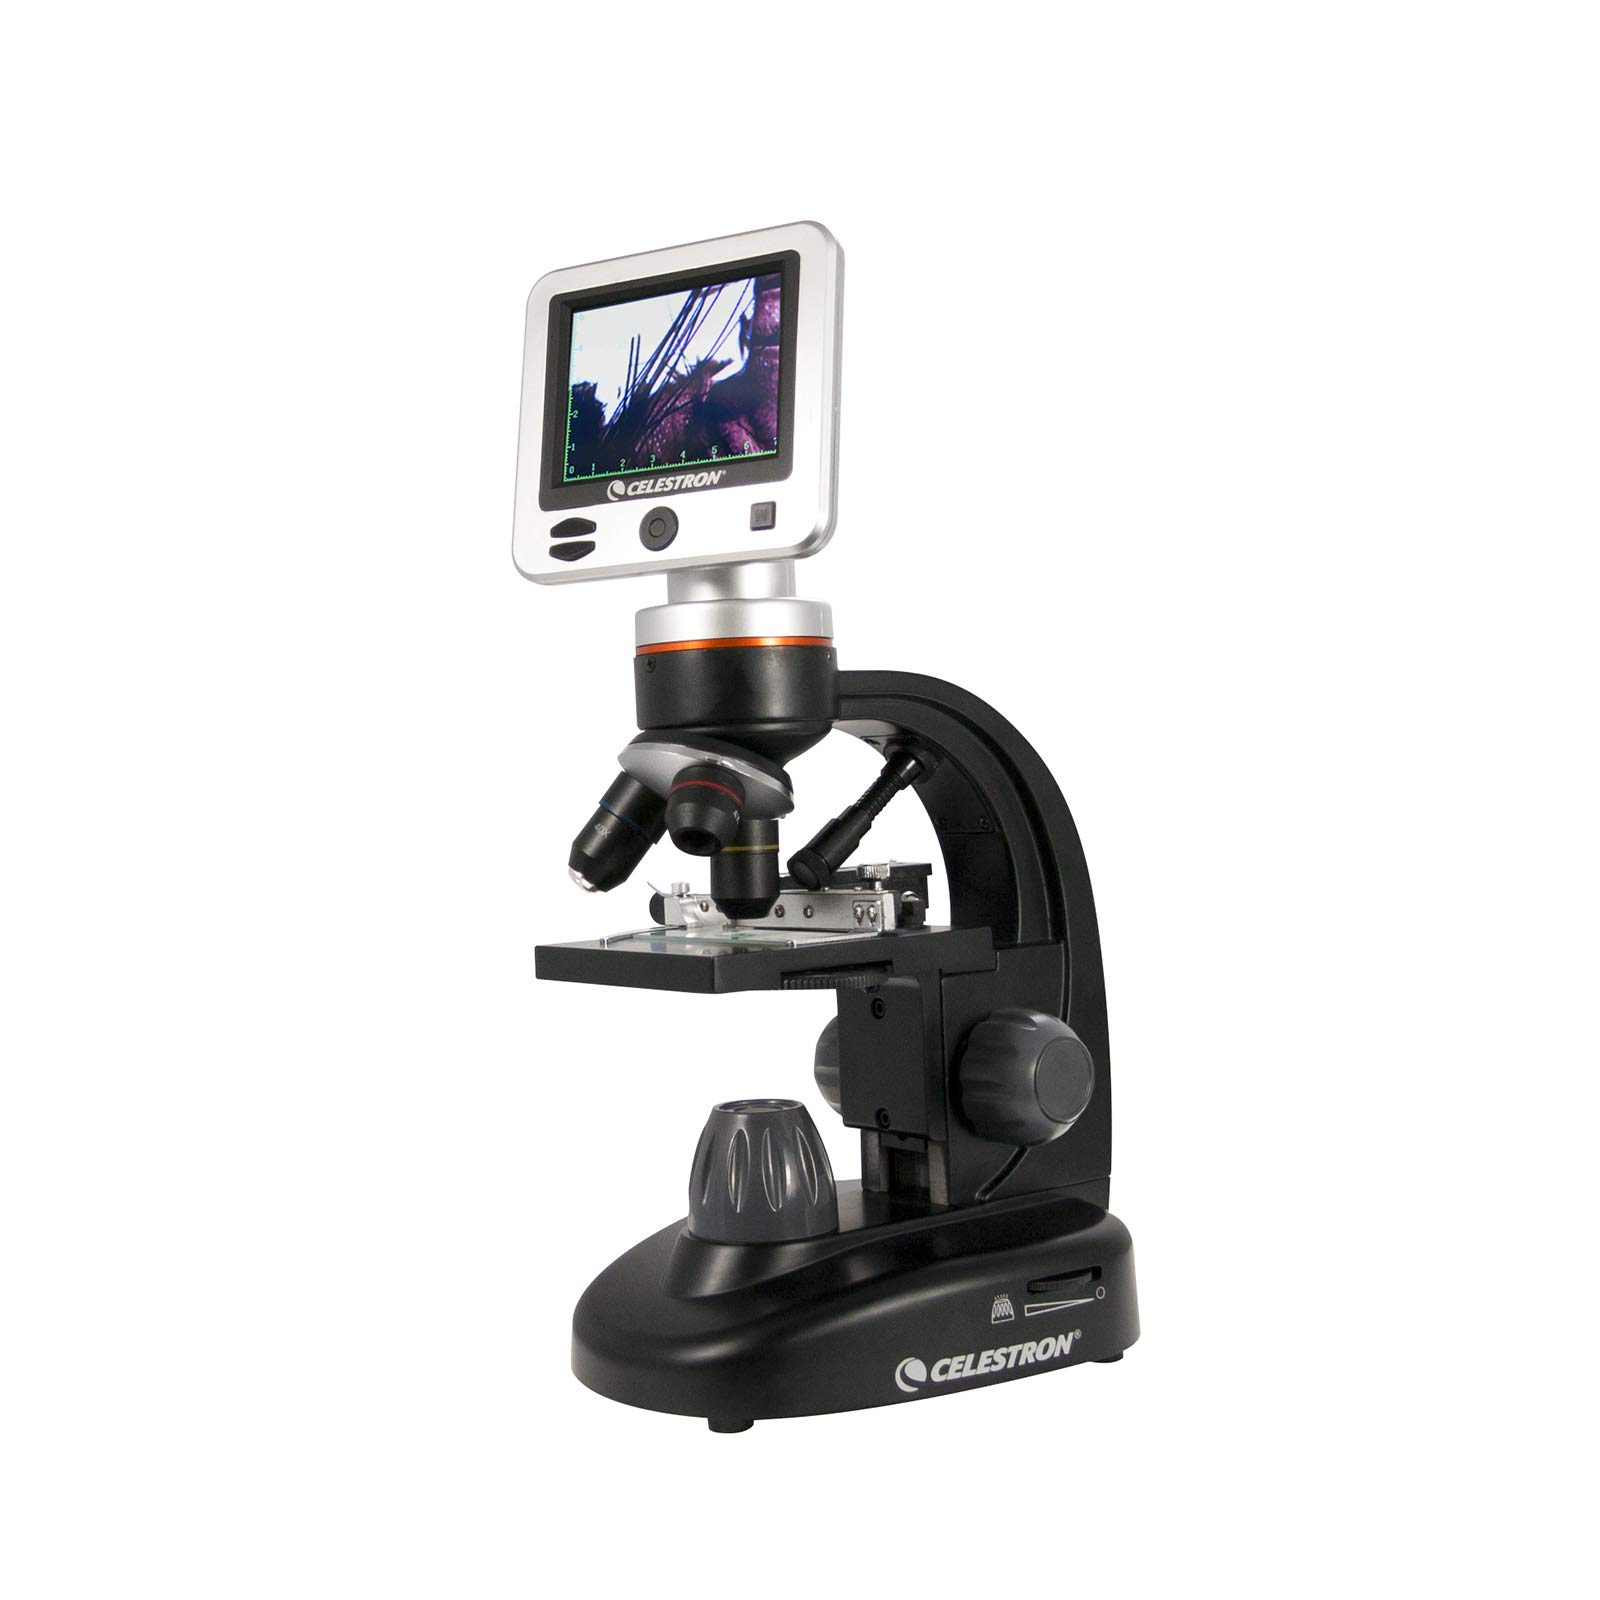 Celestron 44341 LCD Digital Microscope II (Black) by Celestron